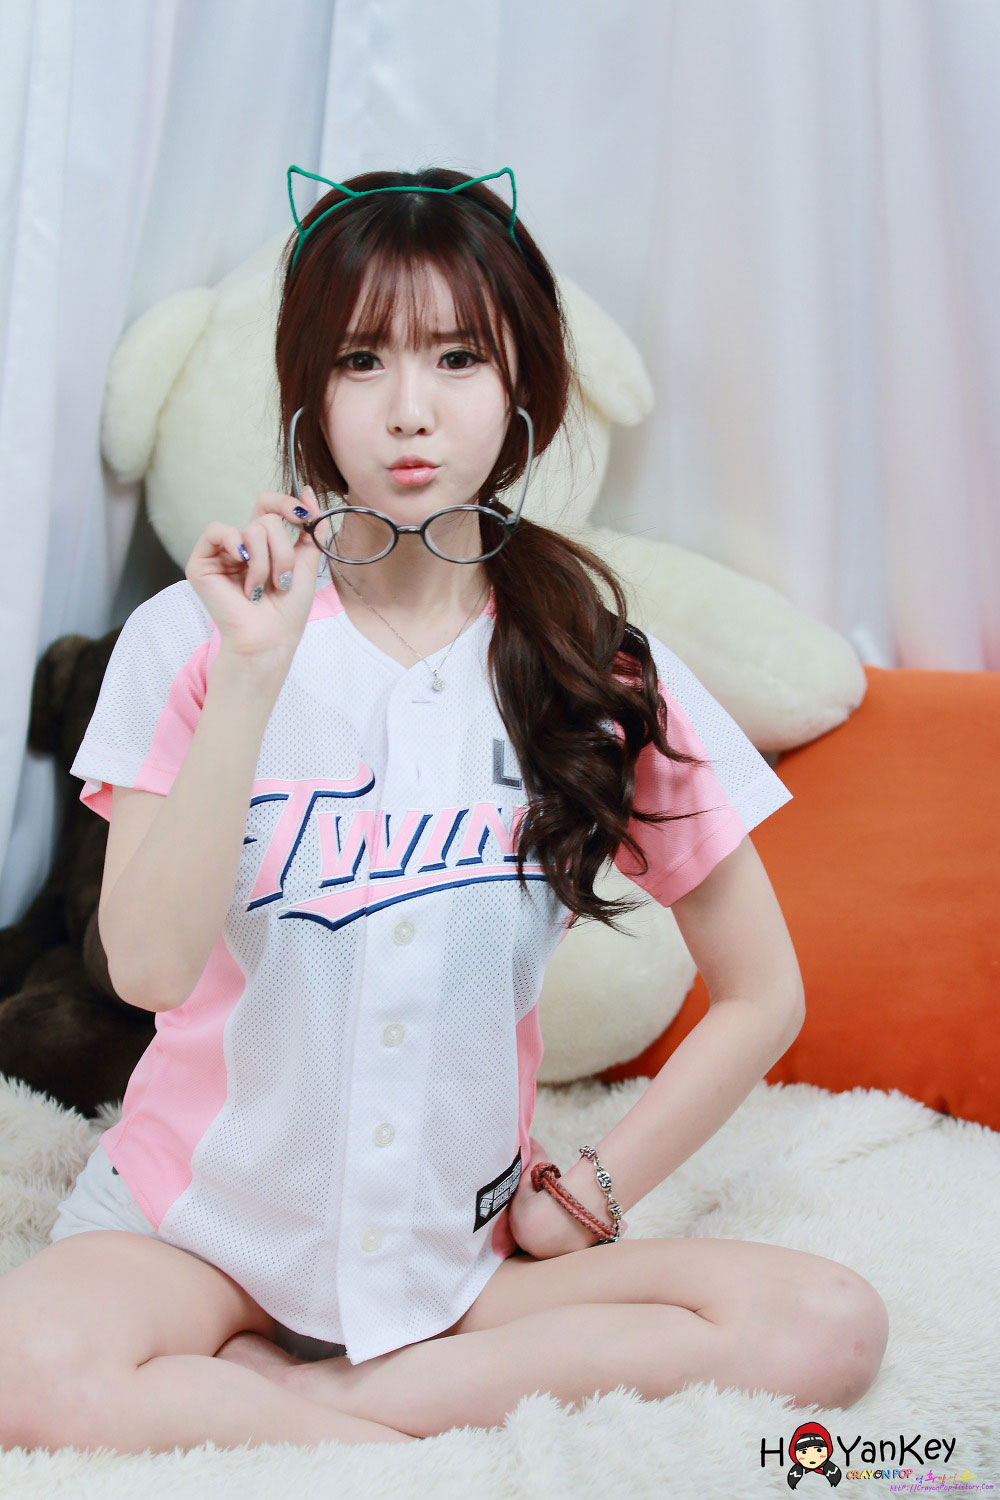 Model Choi Seul Gi baseball jerseys